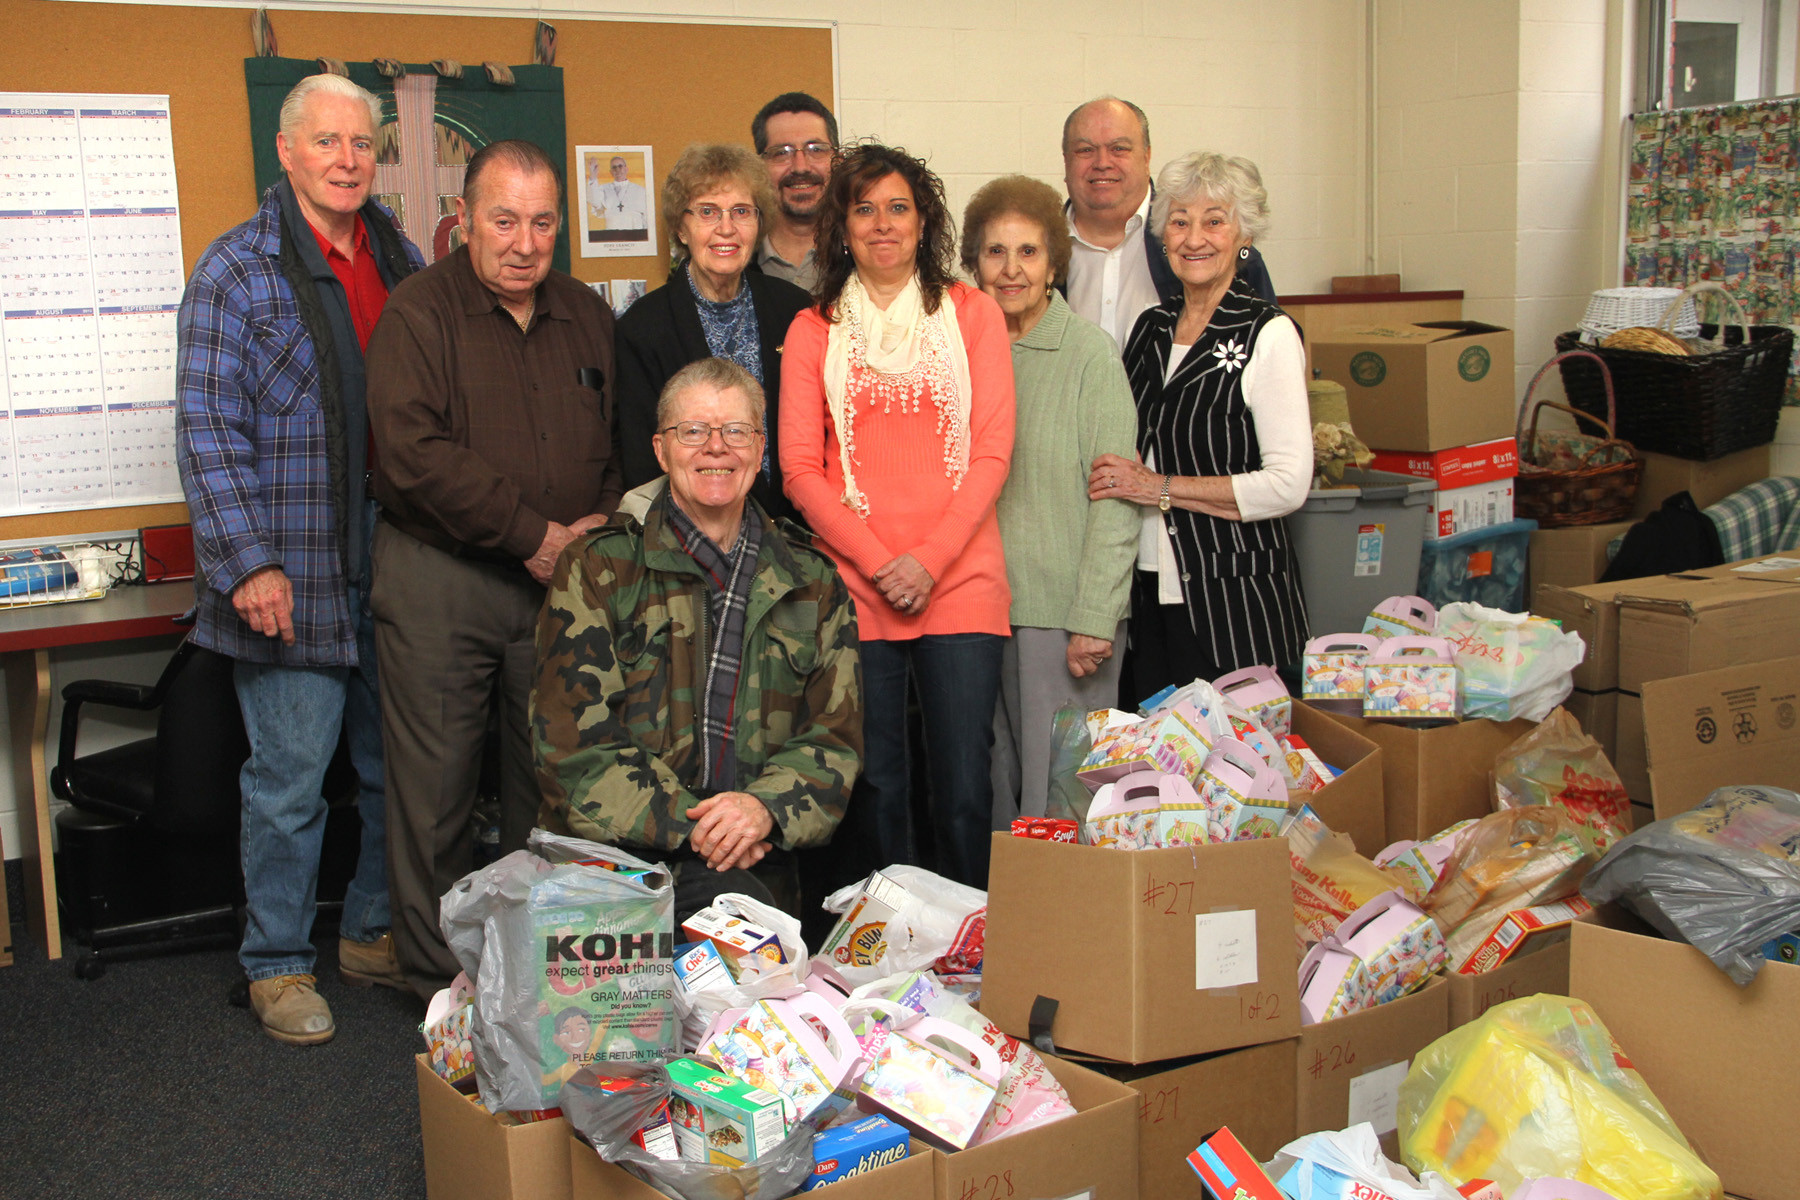 Blessed Sacrament Parish Outreach Center director Judy Miccio, fourth from right, is joined by volunteers Dave McKean, Charles McLaughlin, James Cunningham, Nancy Farrington, Mark Daley, Mary Gluck, James Riley and Angelina Bonfiglio who put baskets together for needy families in Valley Stream.